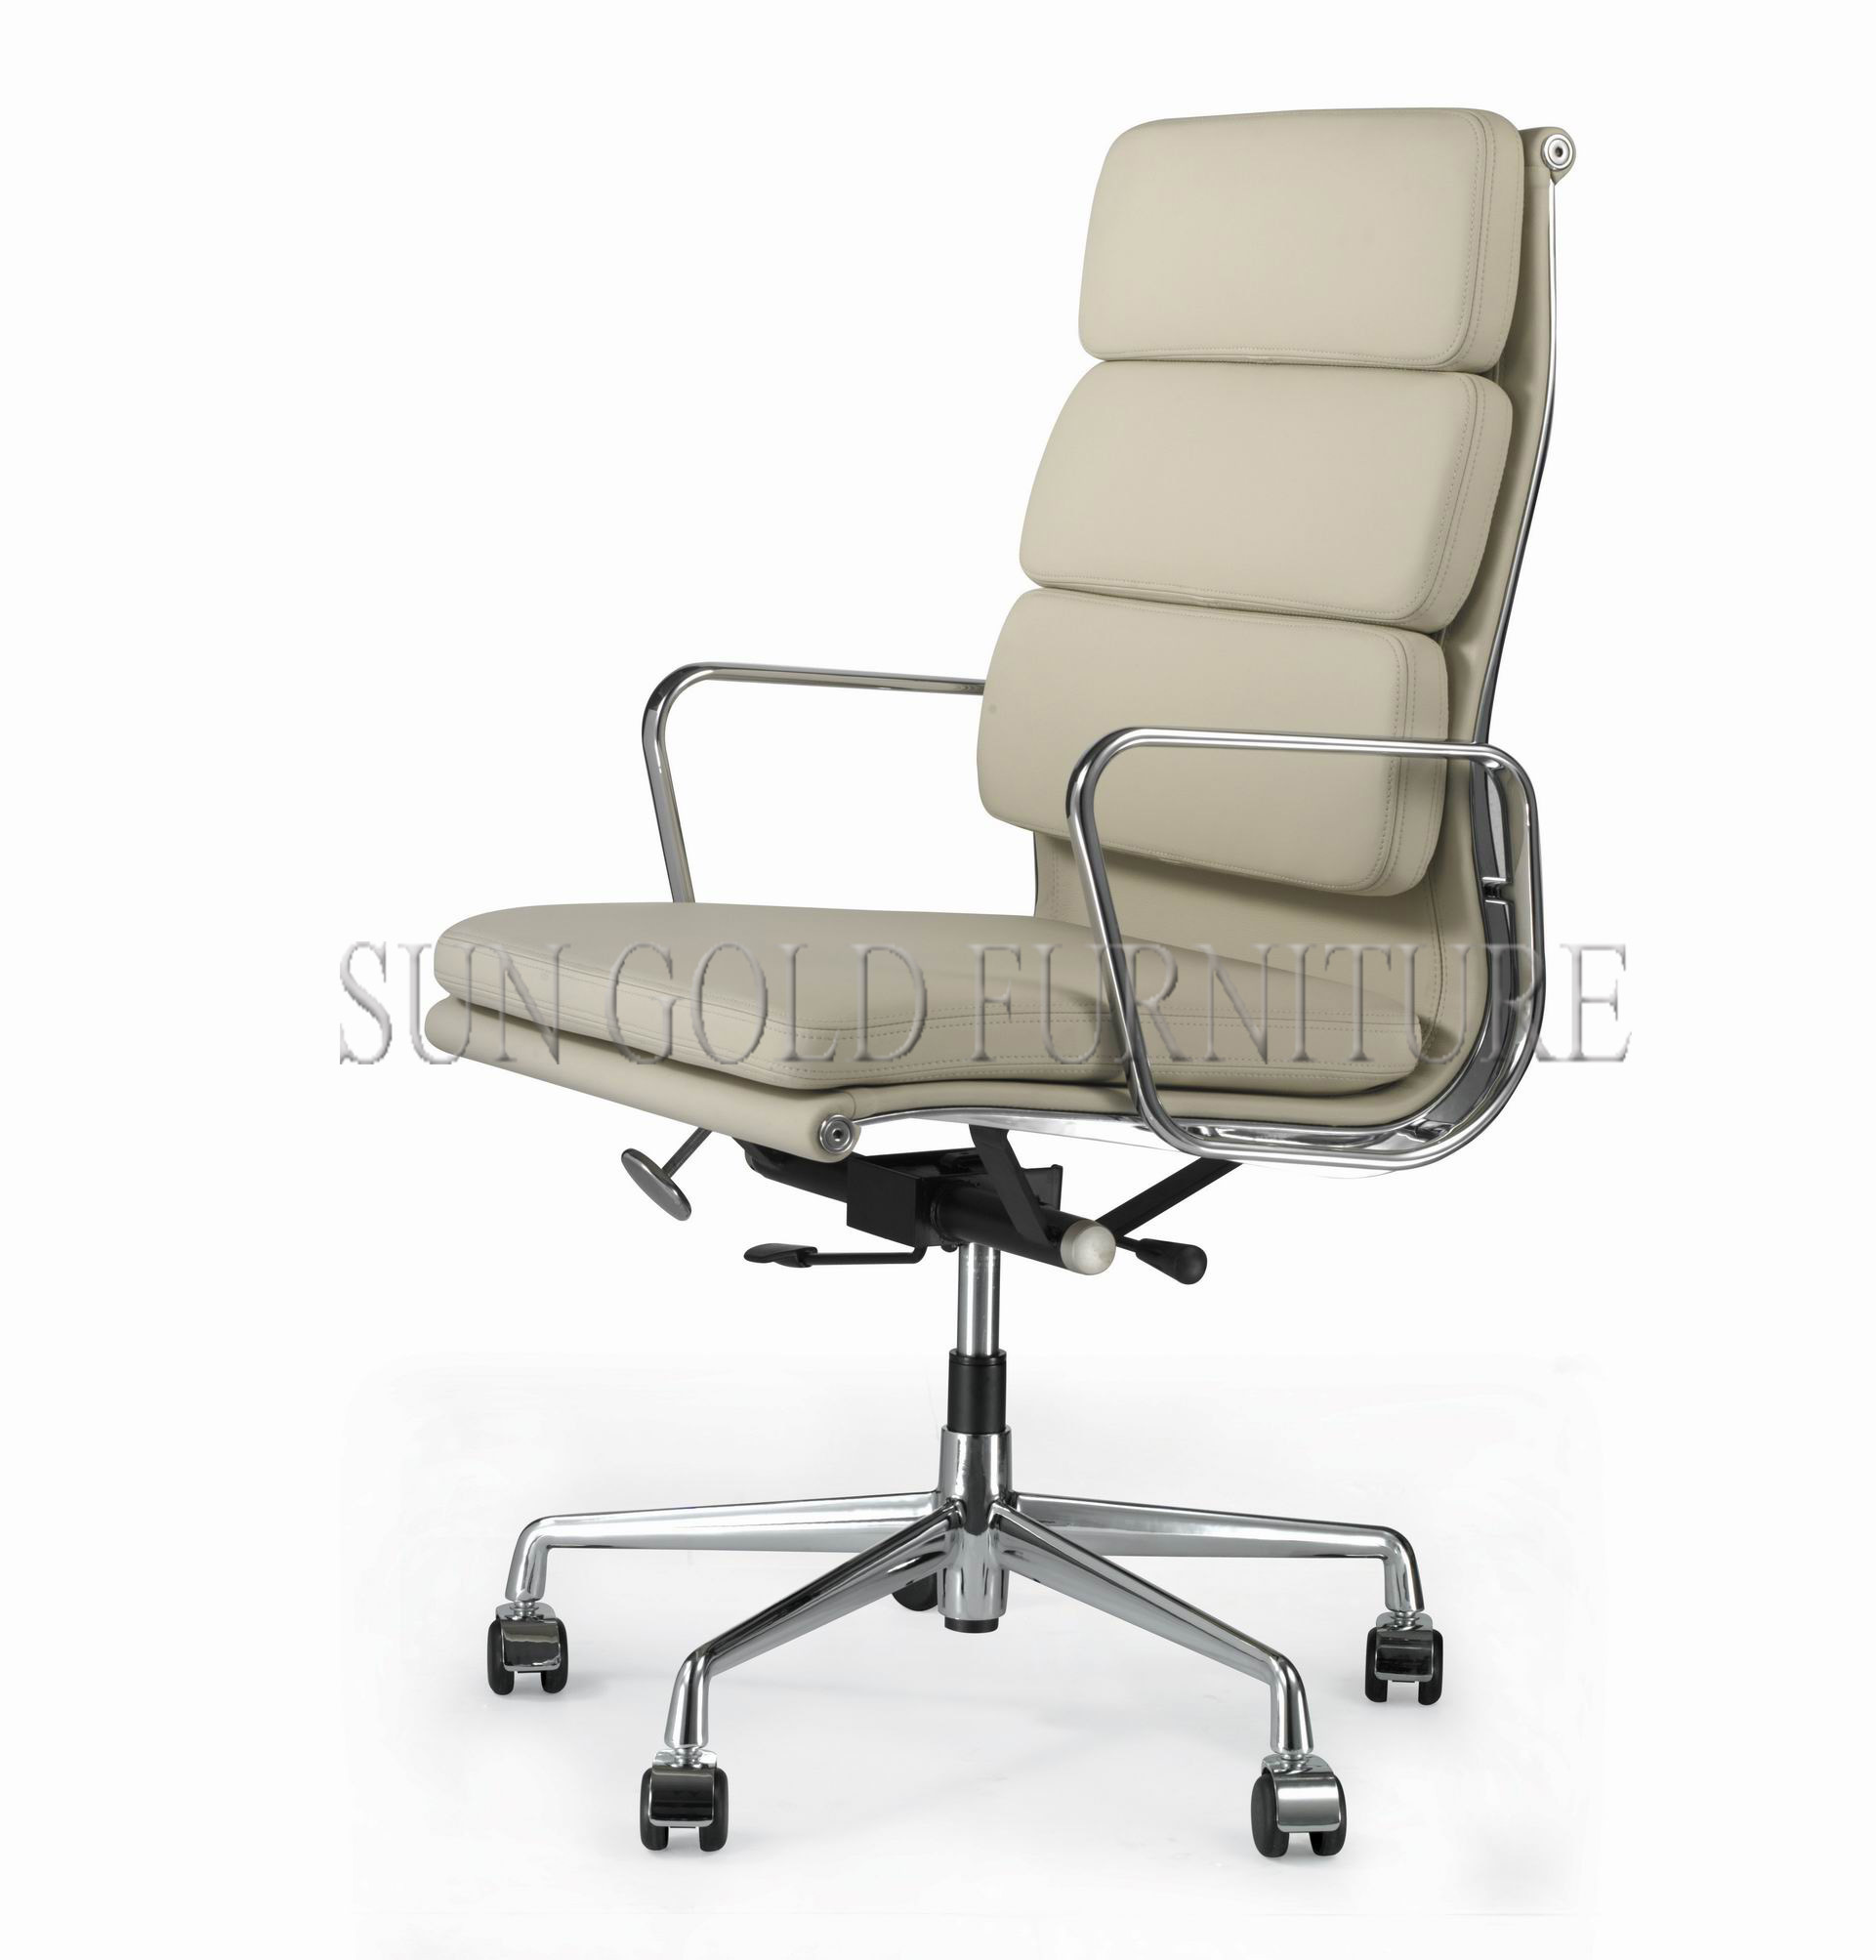 Working Chair China Modern Office Working Chair Luxury Grey Leather Chair Sz